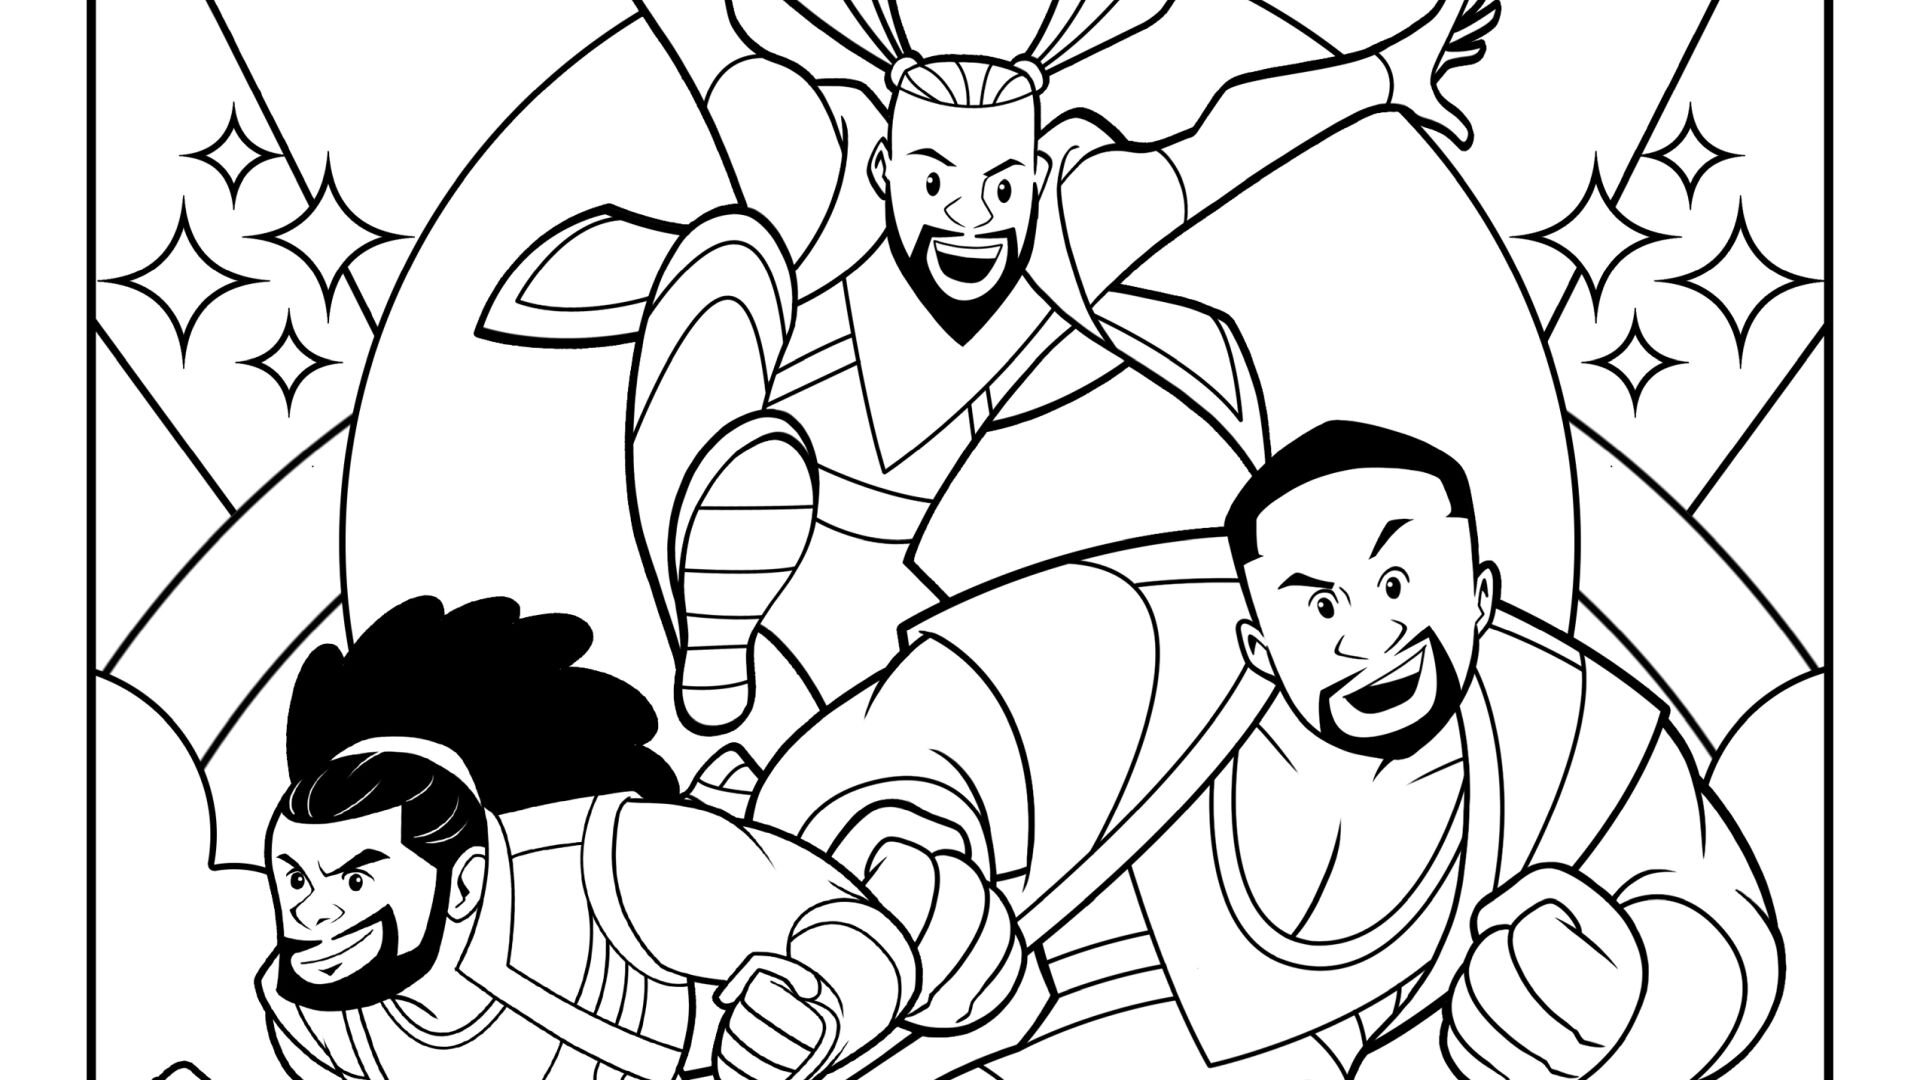 42 Best wwe coloring pages images | Wwe coloring pages, Coloring ... | 1080x1920